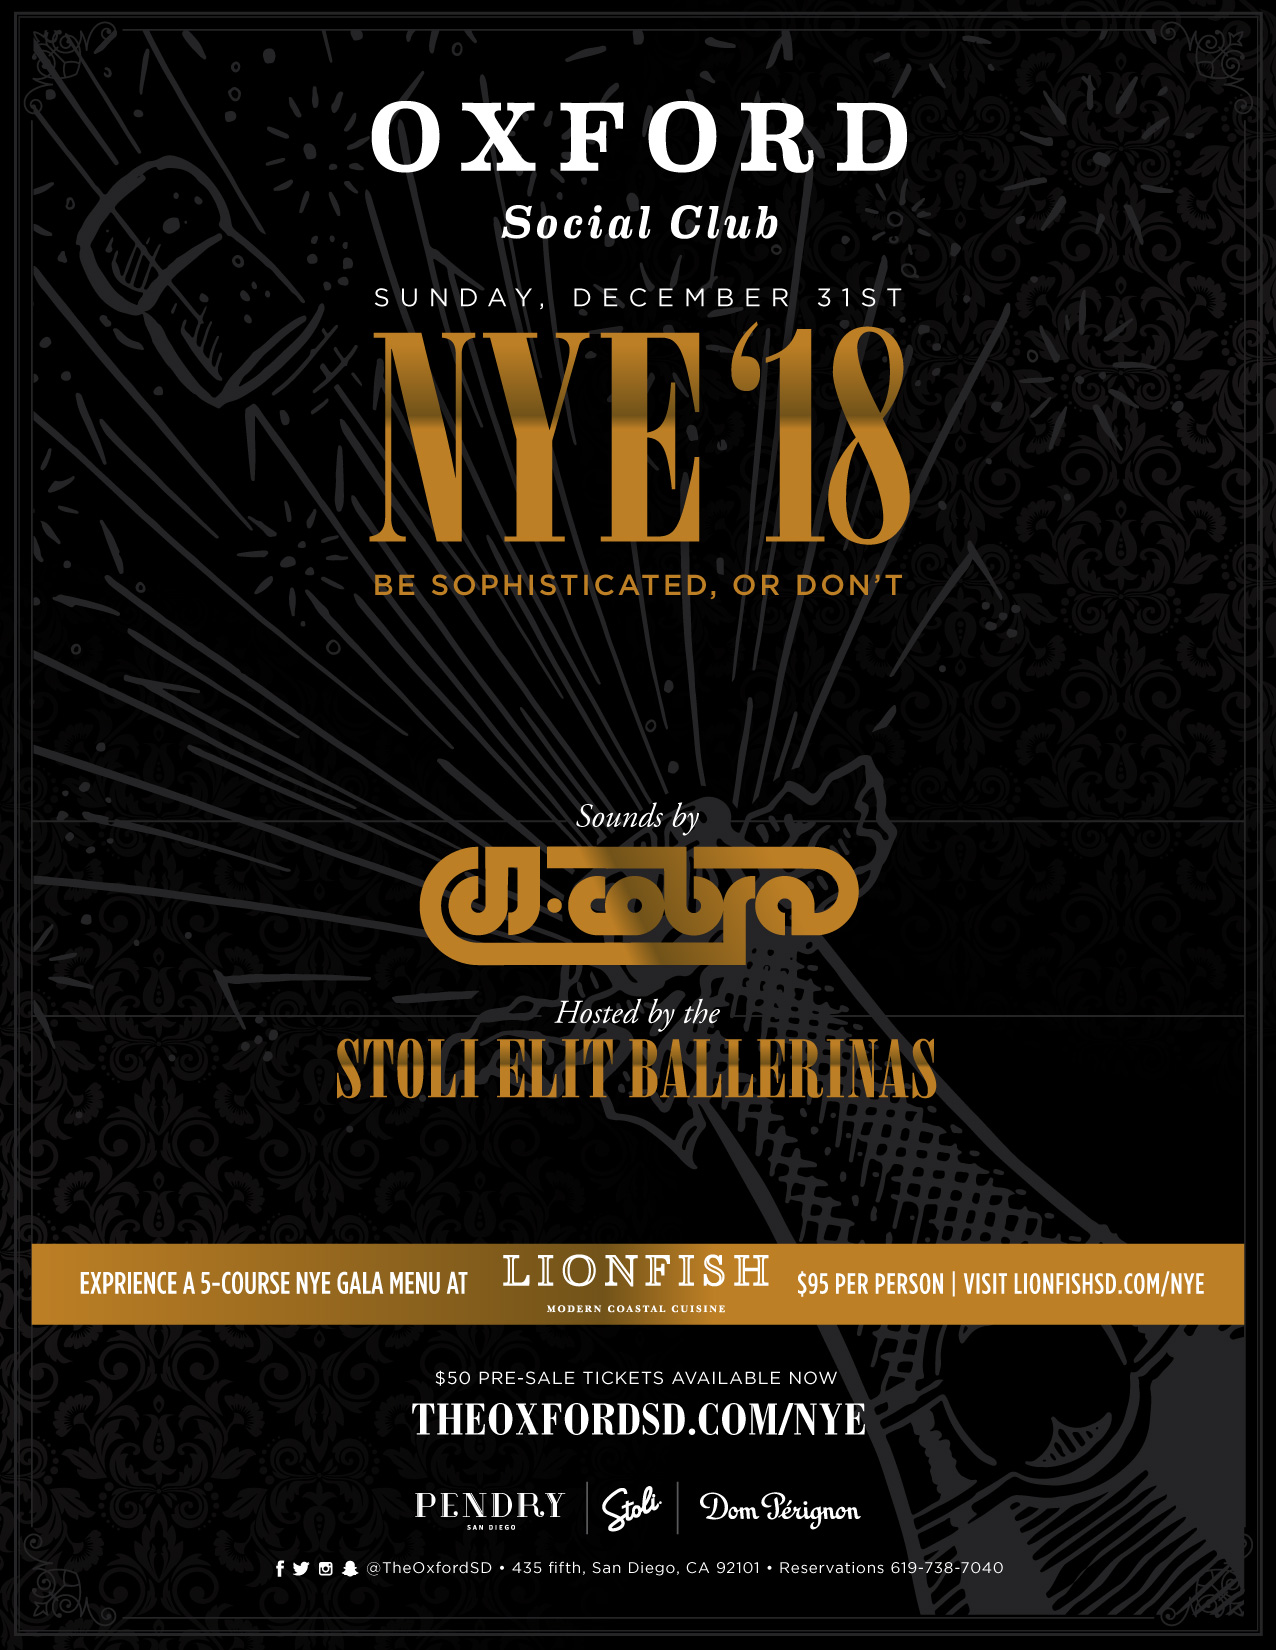 Oxford Social Club NYE